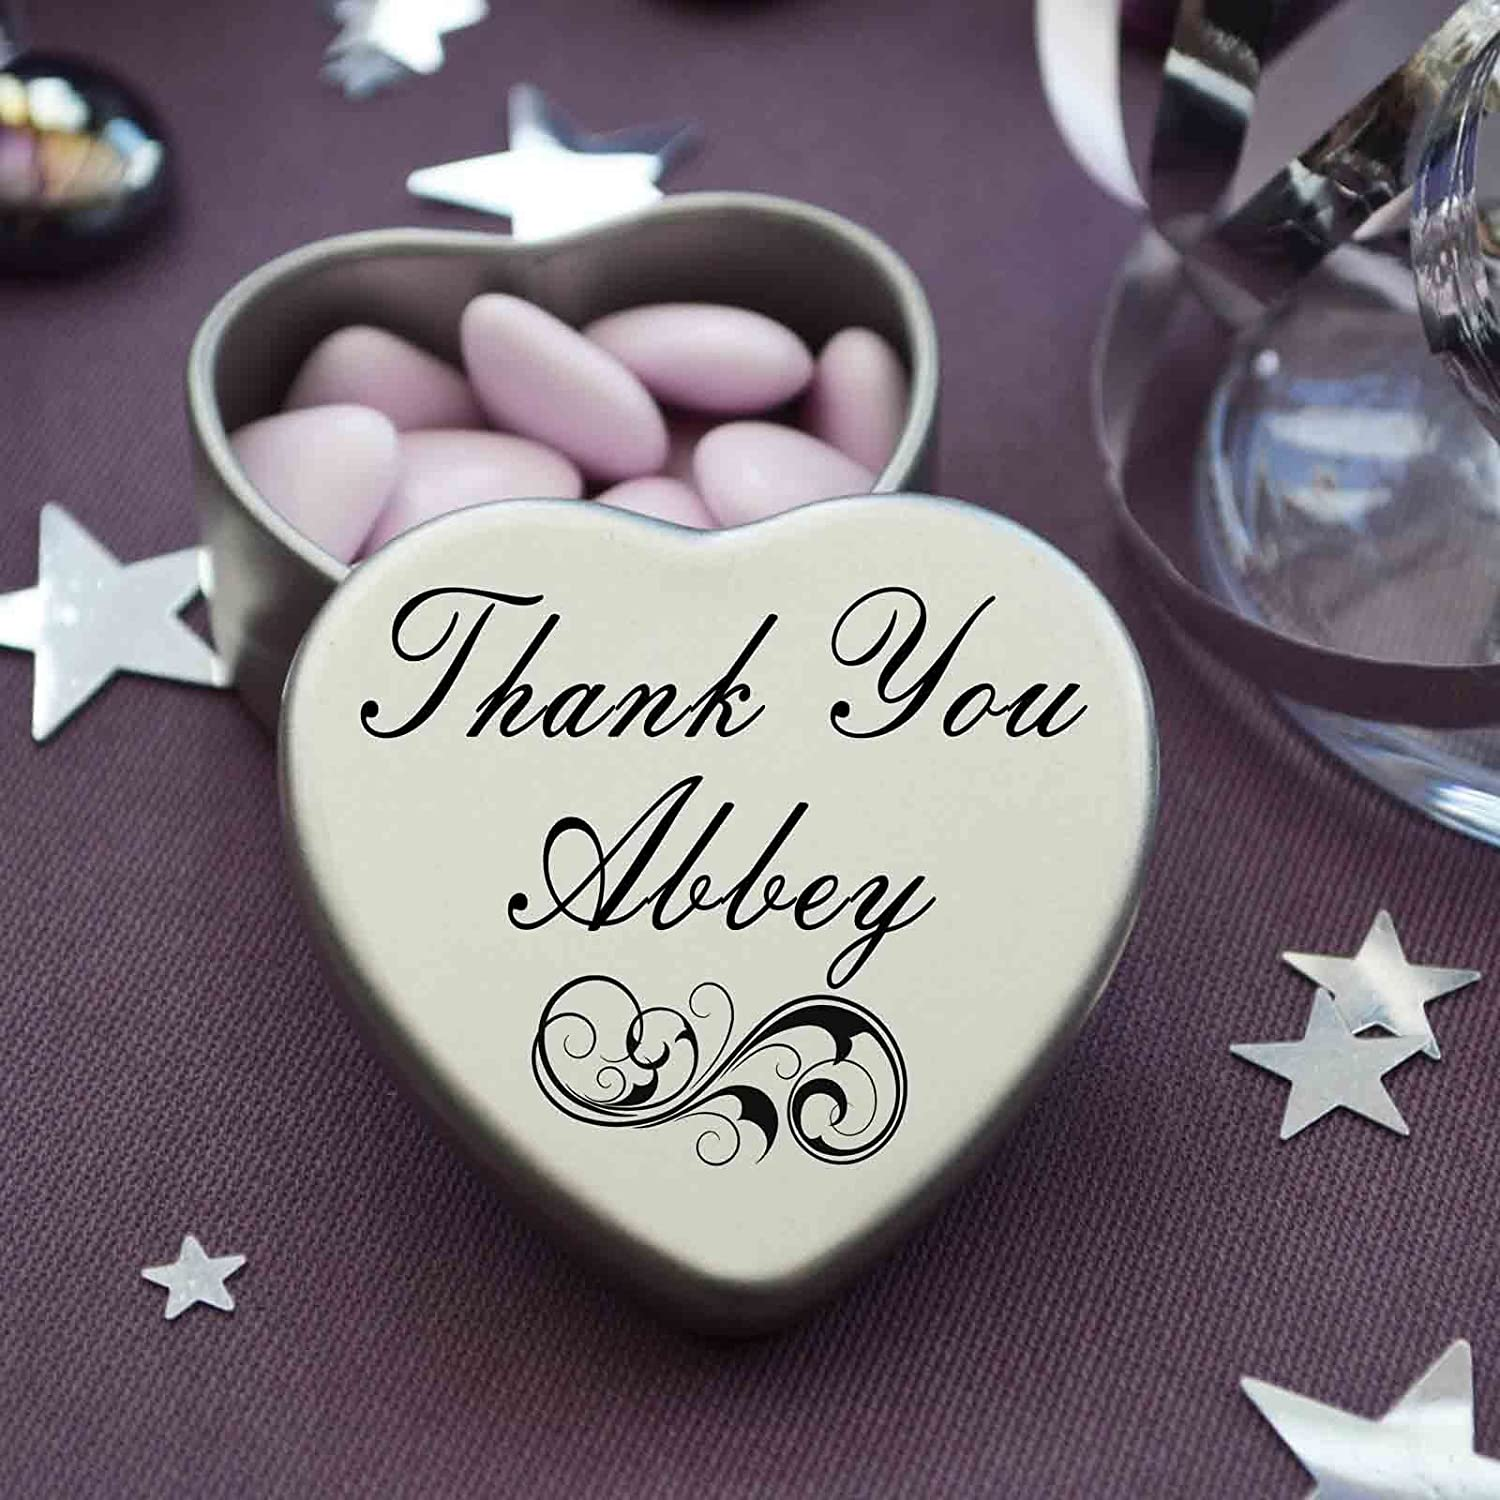 Tin Measurements 45mmx45mmx20mm Perfect Way to Say Thank You Abbey With A Mini Heart Tin Gift Present with Chocolates Makes a beaufiful Gift or Present to show your Thanks Fits Beautifully in the palm of your hand